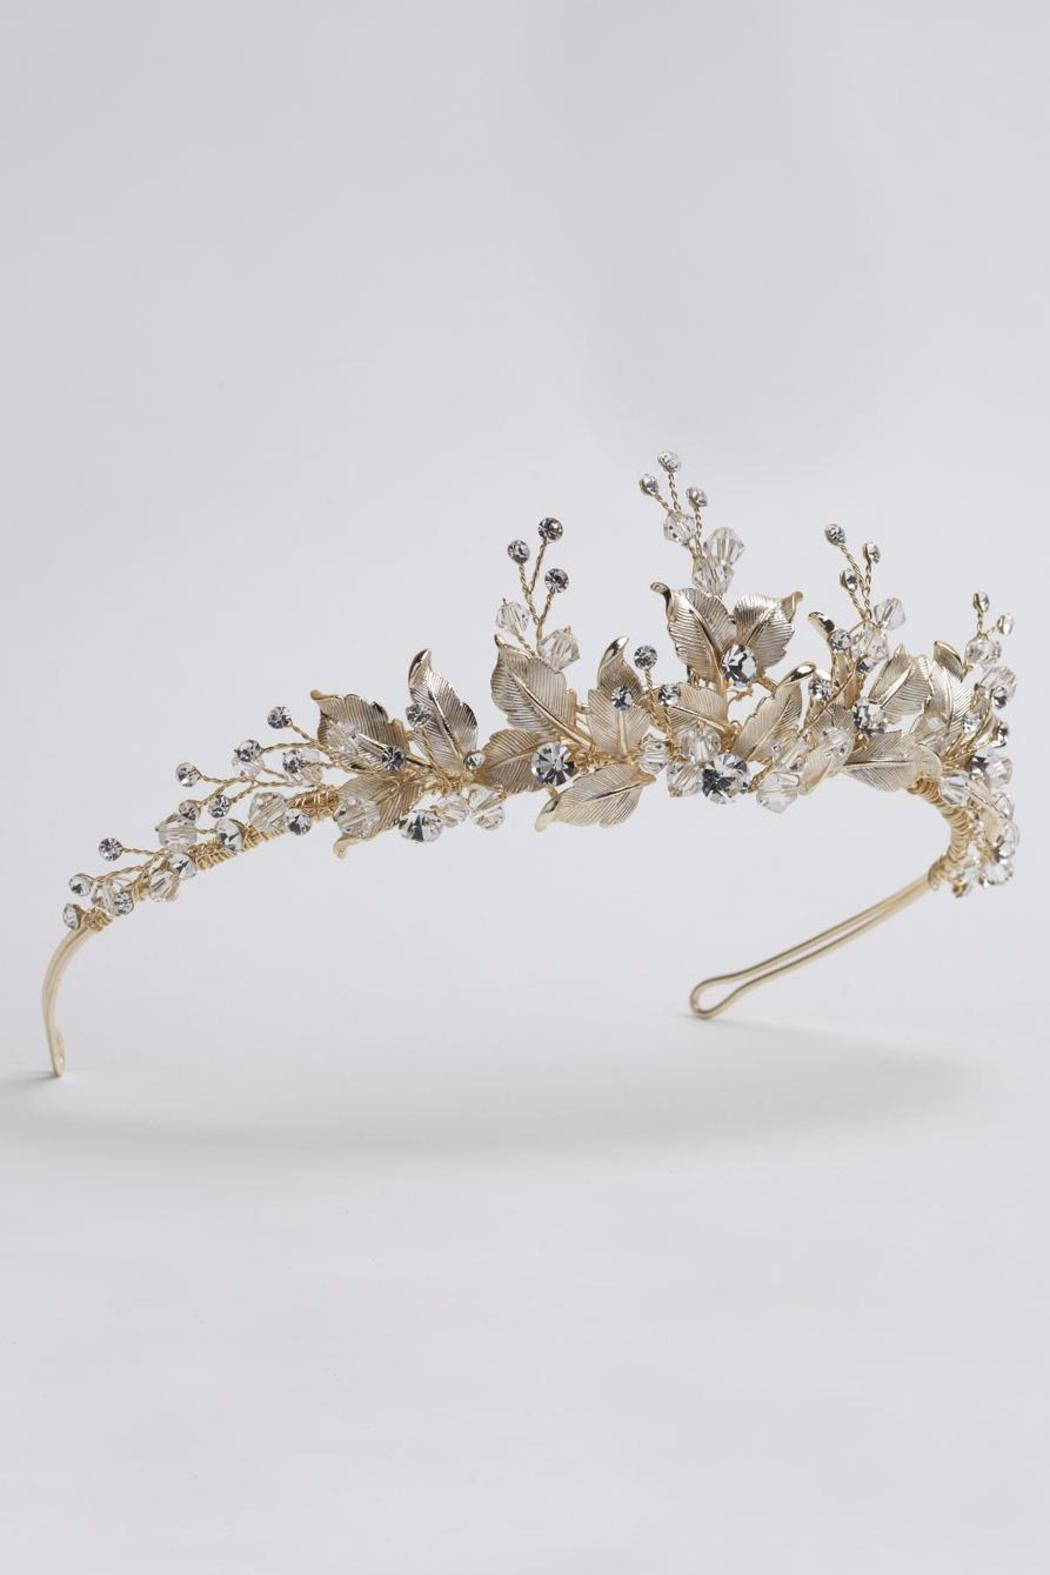 Dareth colburn collection gold flower crown from massachusetts dareth colburn collection gold flower crown side cropped image izmirmasajfo